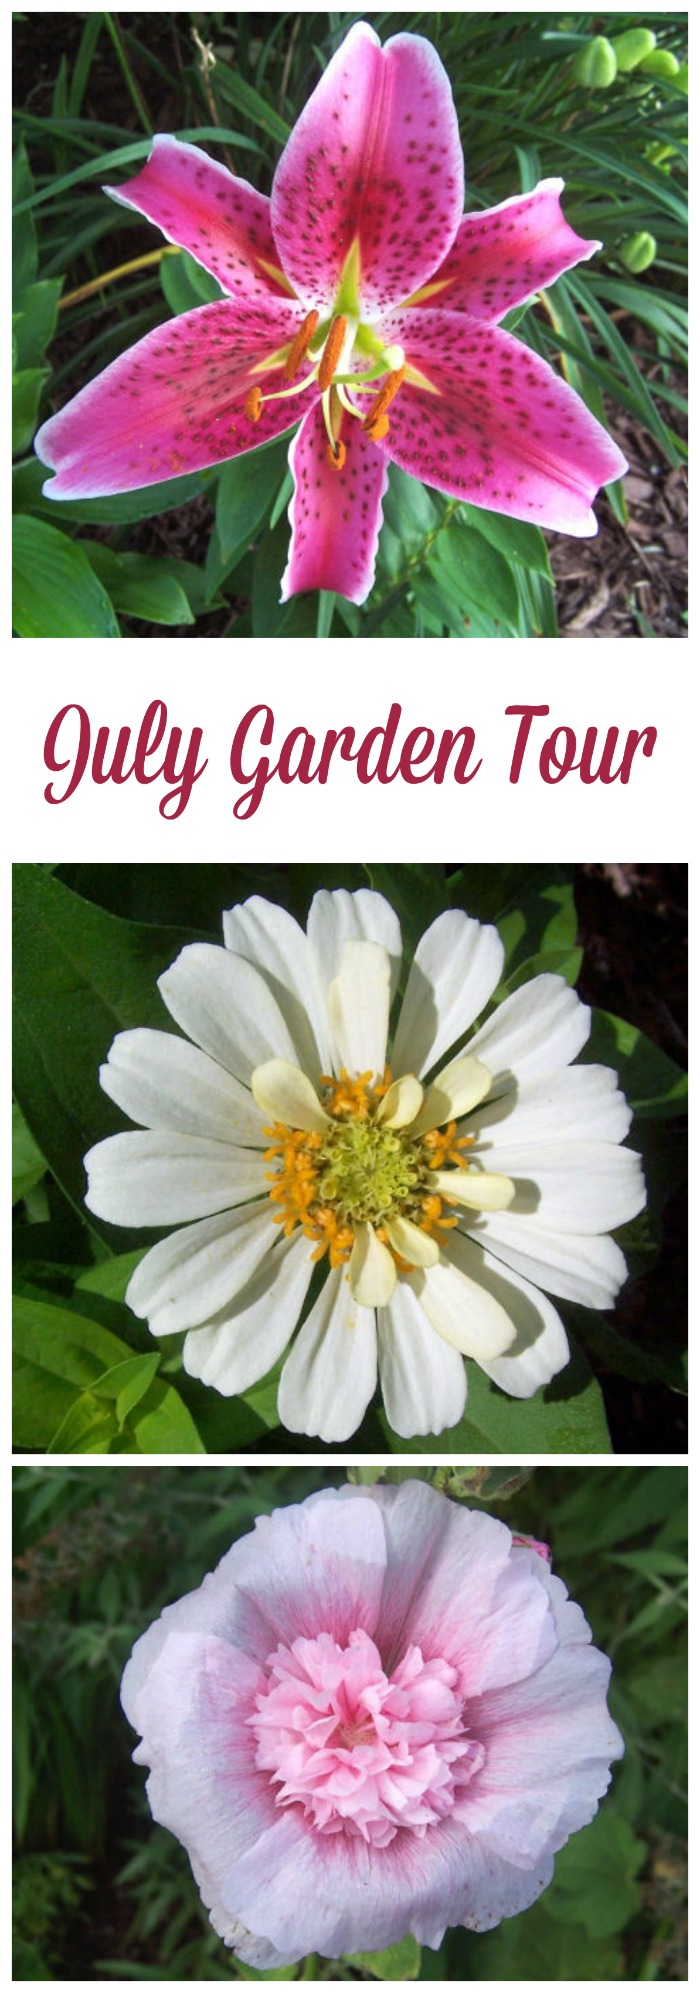 July Garden Tour featuring perennials and annuals for a hot summer garden.